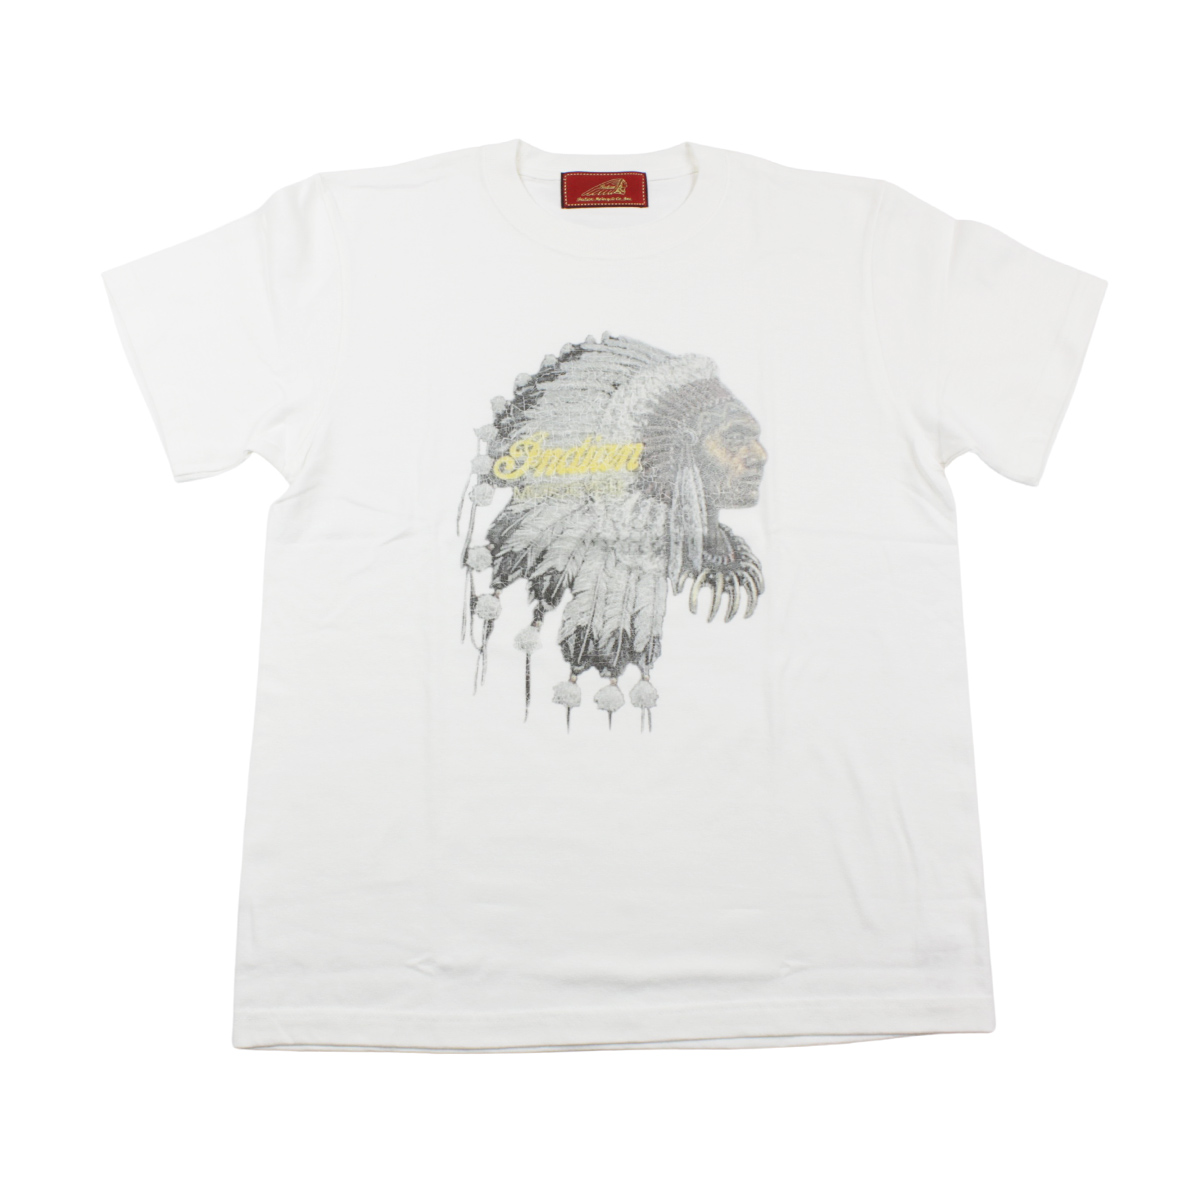 Indian インディアン The Indian is Back Tee War bonnet